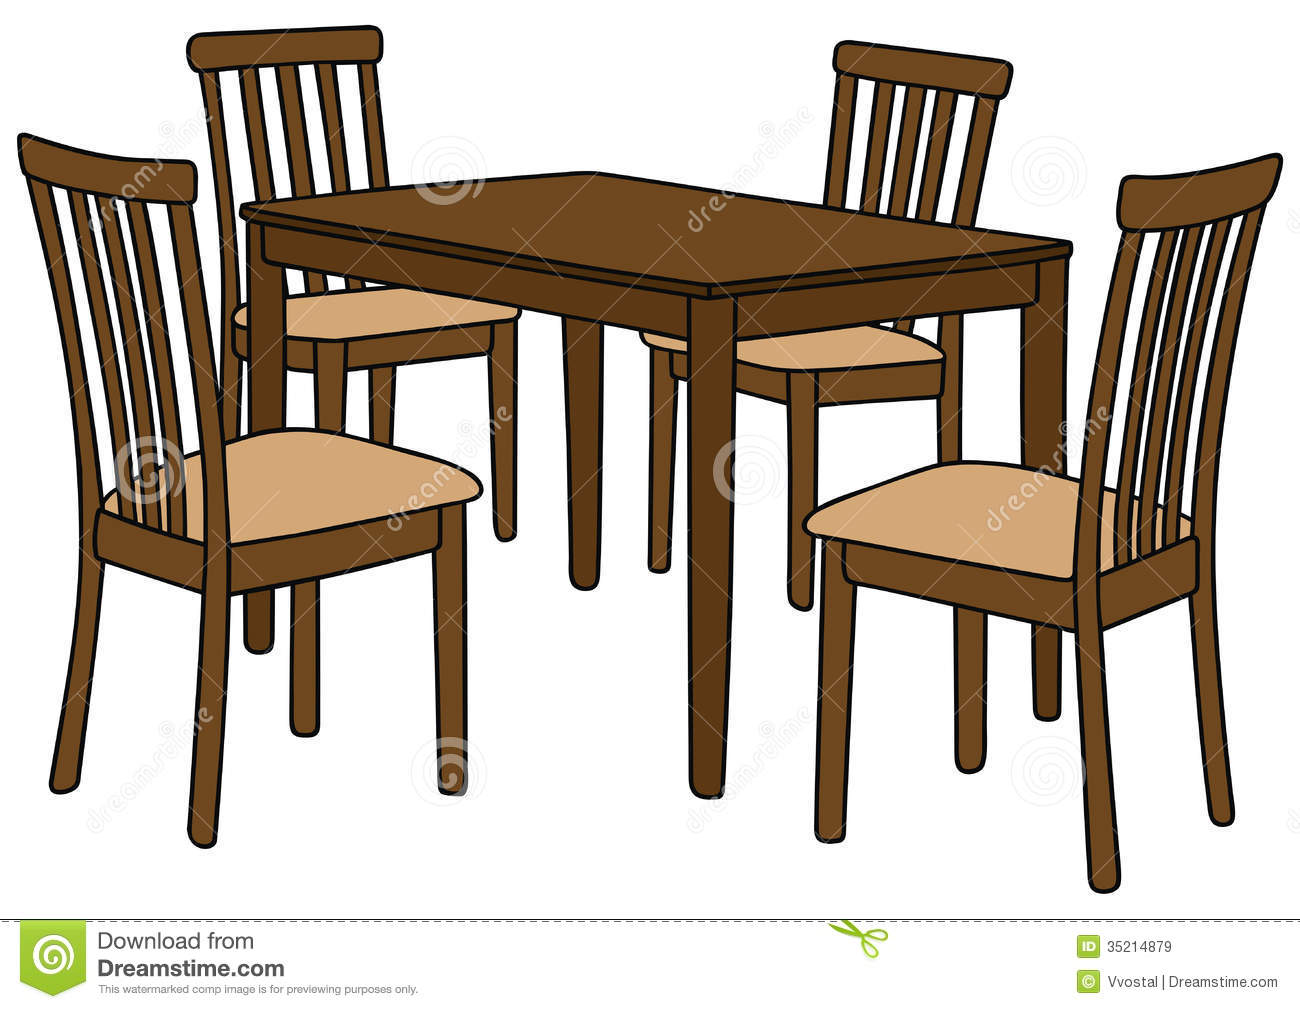 Corsica Contemporary Cafe Chair in addition Clip Art Cartoon Table Cliparts moreover Bulk Floor To Ceiling Storage Solution as well 442900944574421246 as well Modern Kids Room Design Heavenly Ideas Wall Ideas Fresh At Modern Kids Room Design. on wooden cafeteria tables